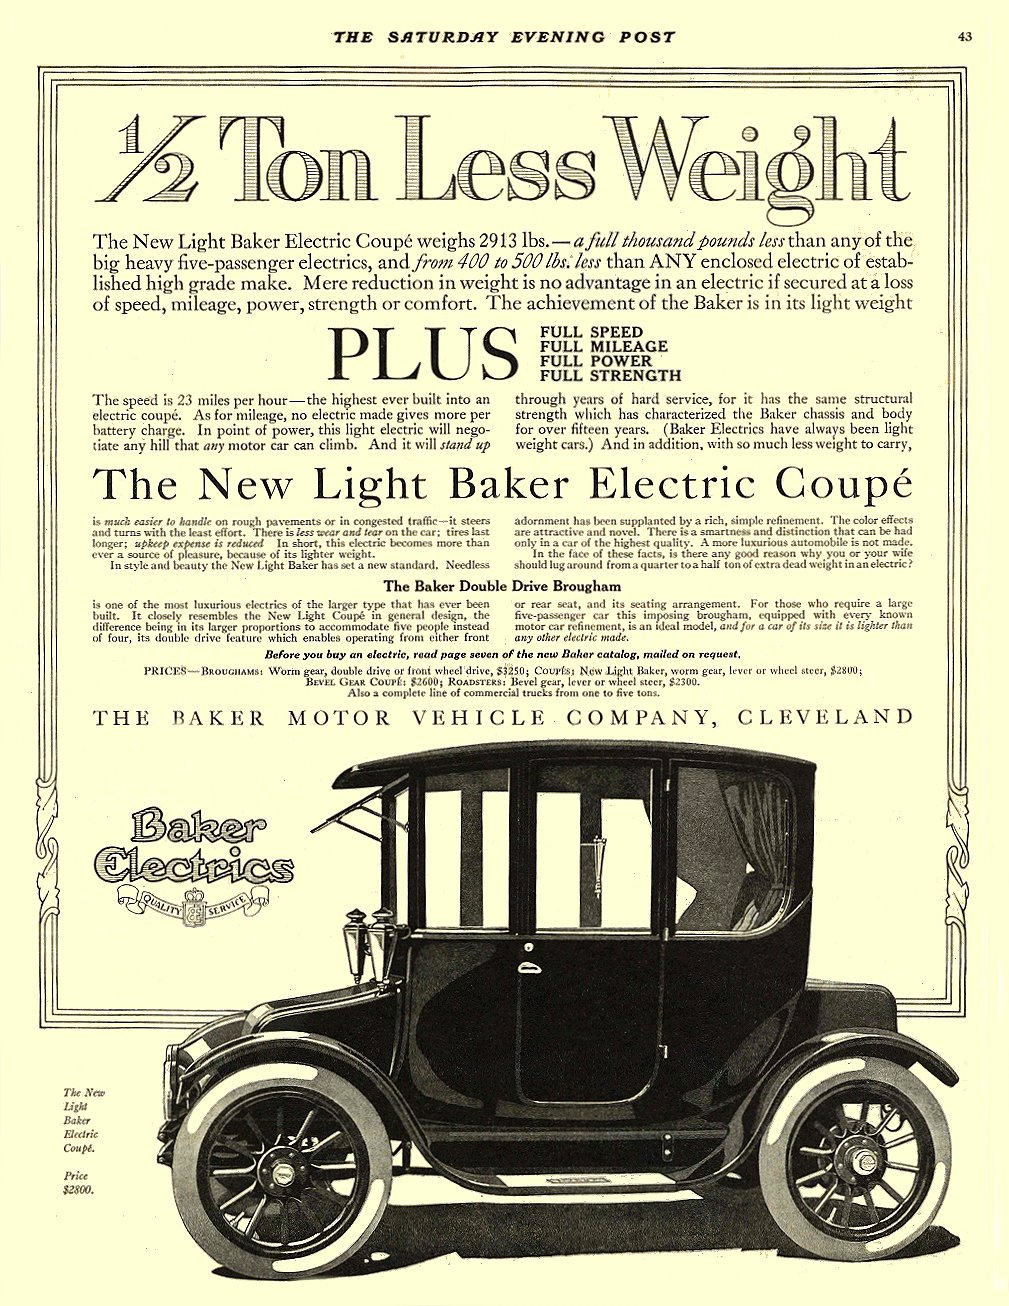 1915 1 9 BAKER Electric ½ Ton Less Weight THE BAKER MOTOR VEHICLE COMPANY Cleveland, OHIO THE SATURDAY EVENING POST January 9, 1915 10″x13.5″ page 43